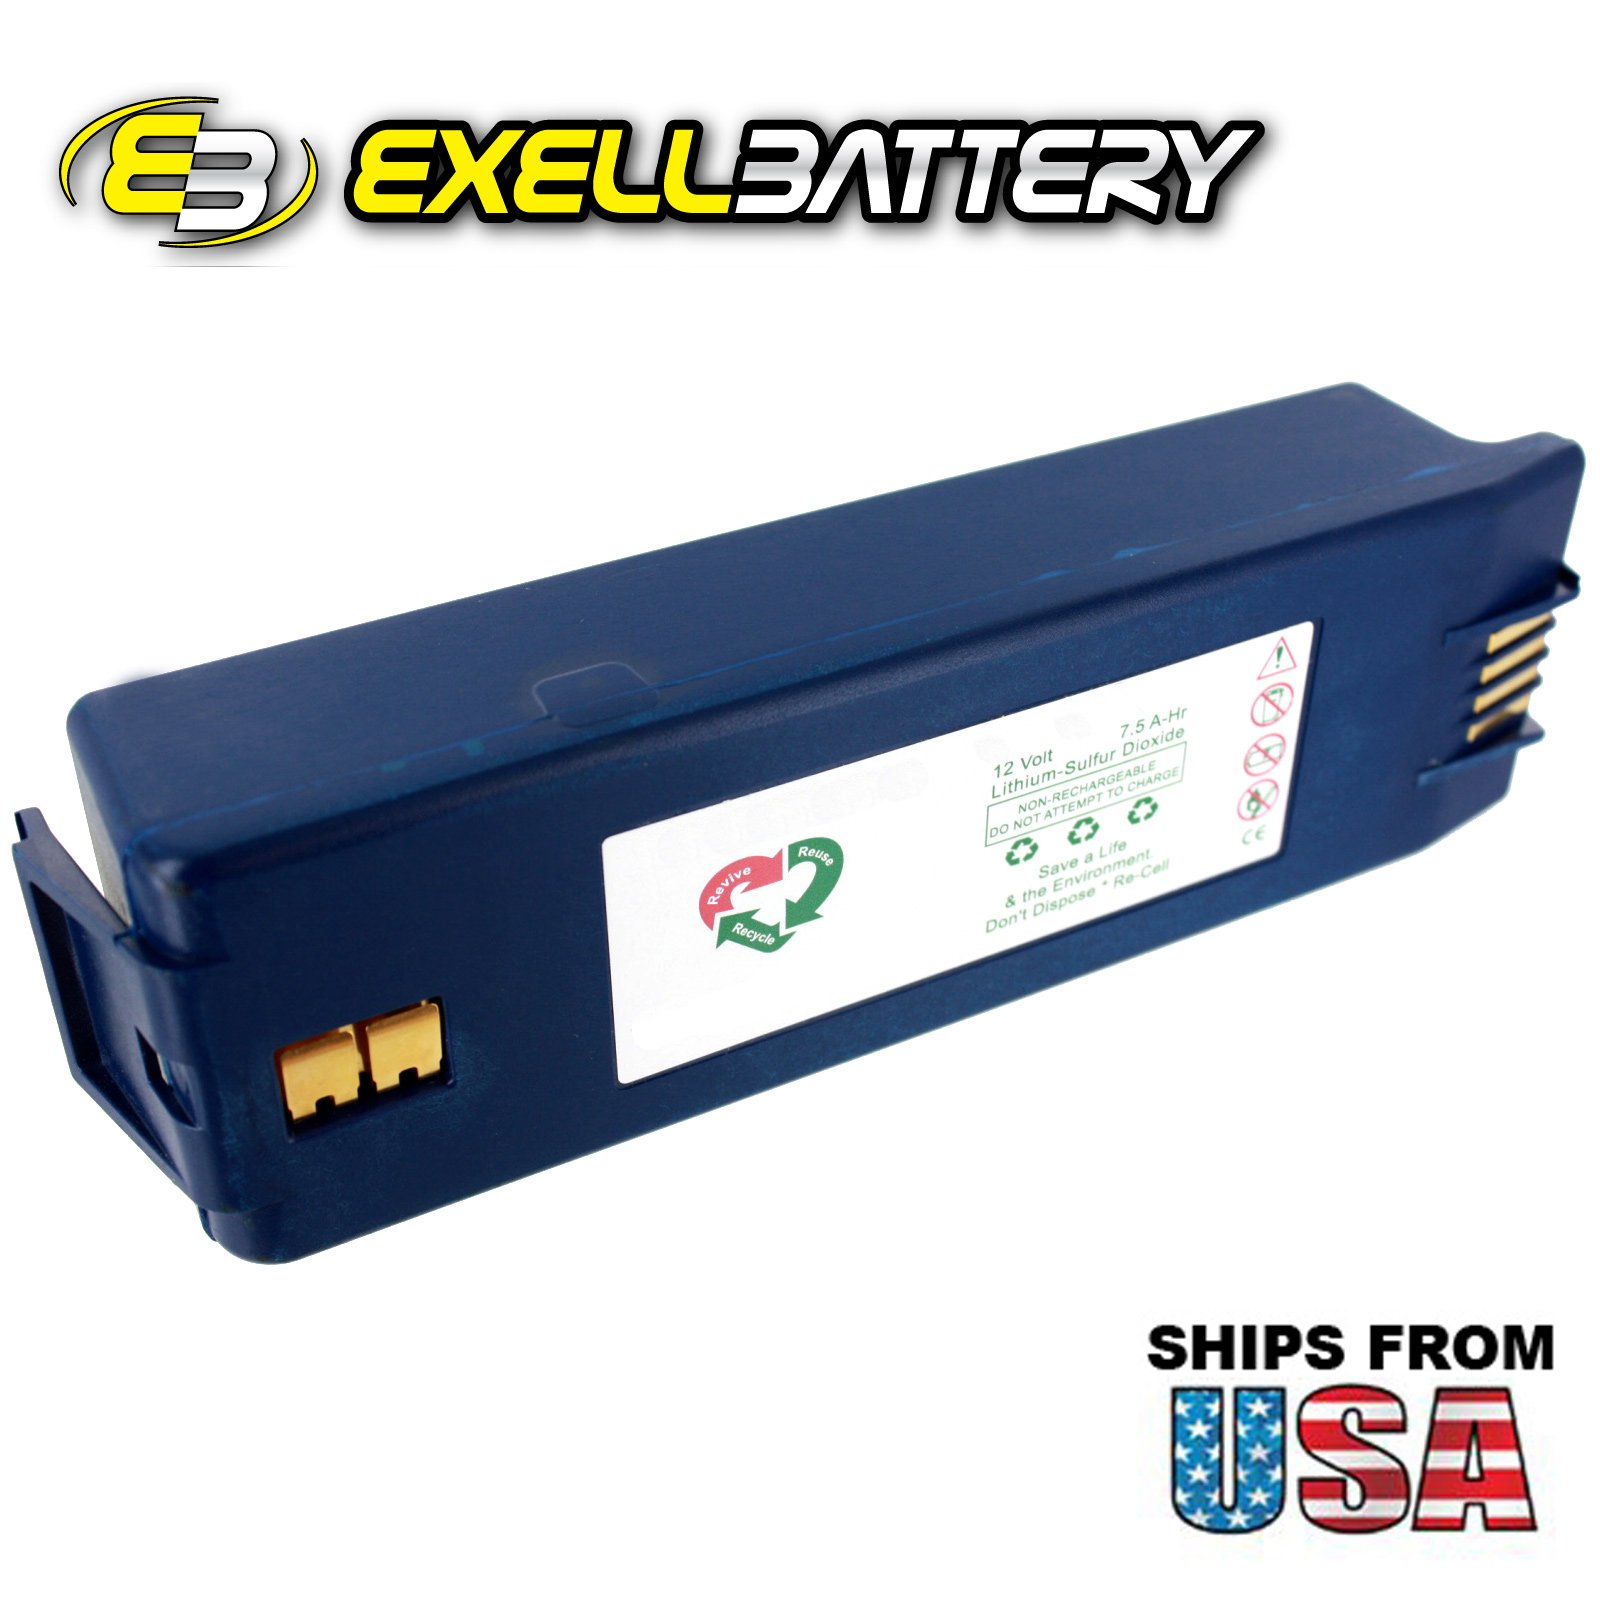 Exell 12V 7.5 A-Hr AED Medical Battery For Save Survivalink & Powerheart AEDs by Exell Battery